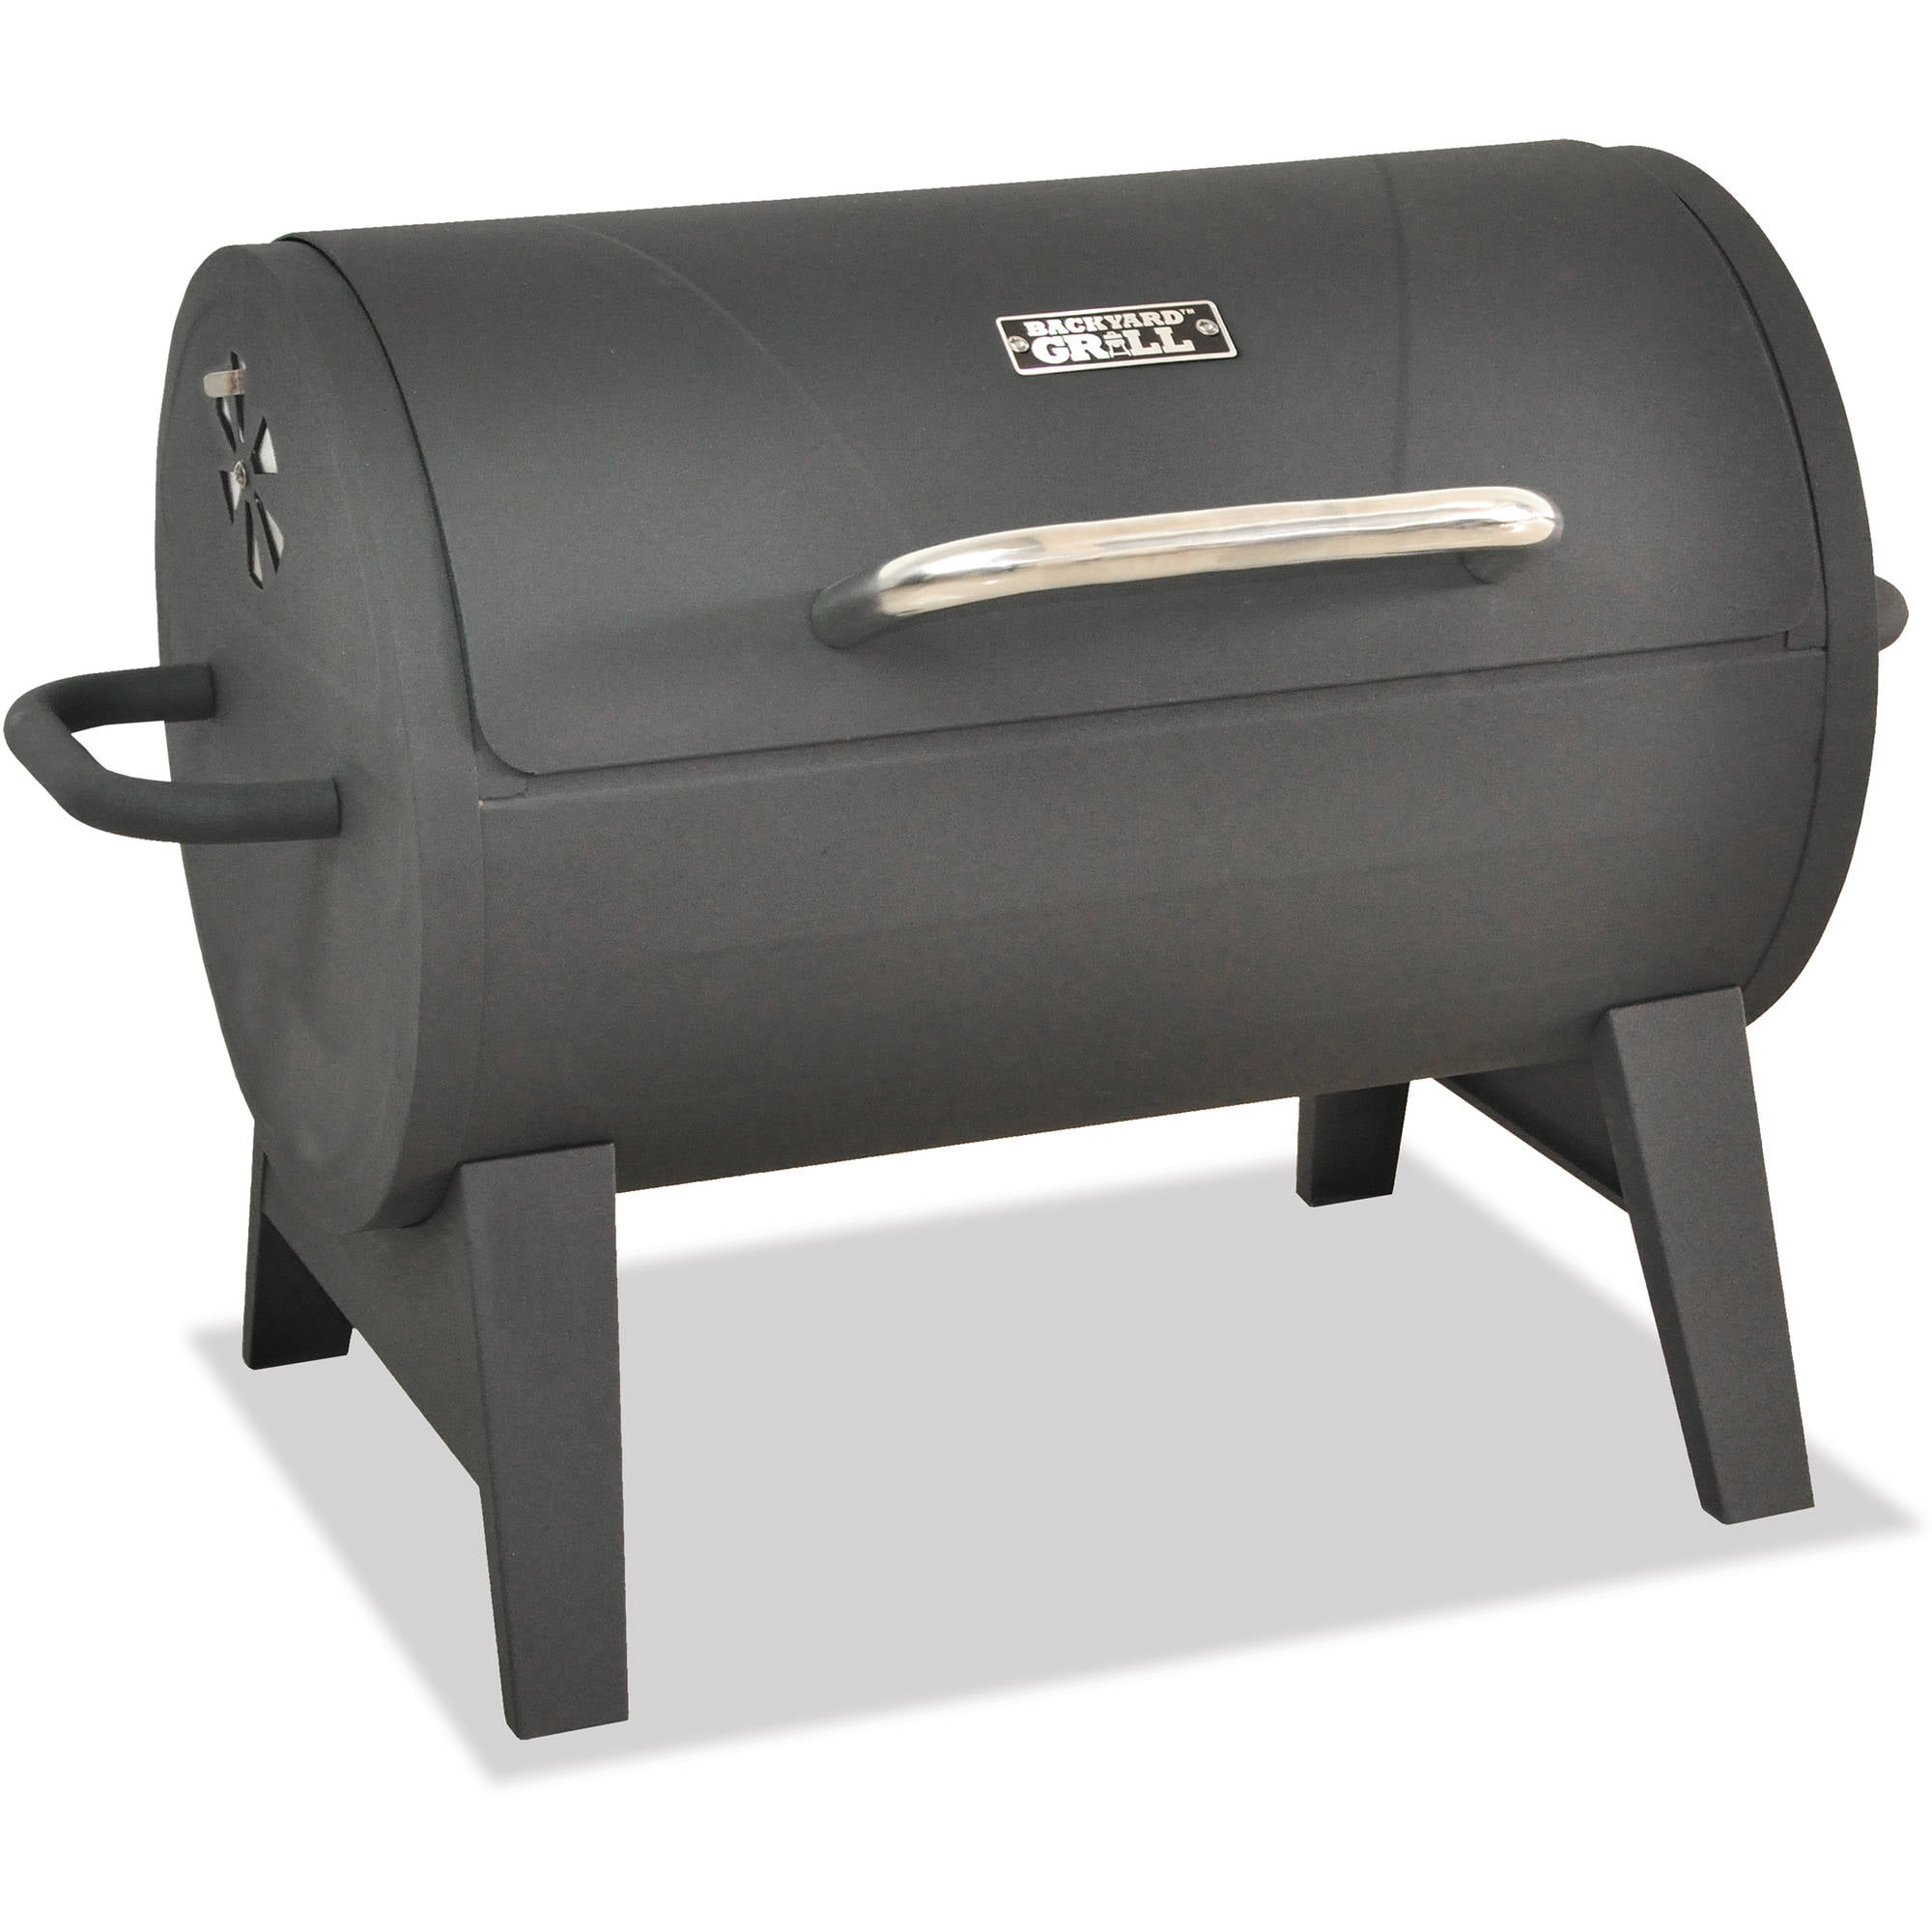 Backyard Grill Barrel Charcoal Grill   Walmart.com